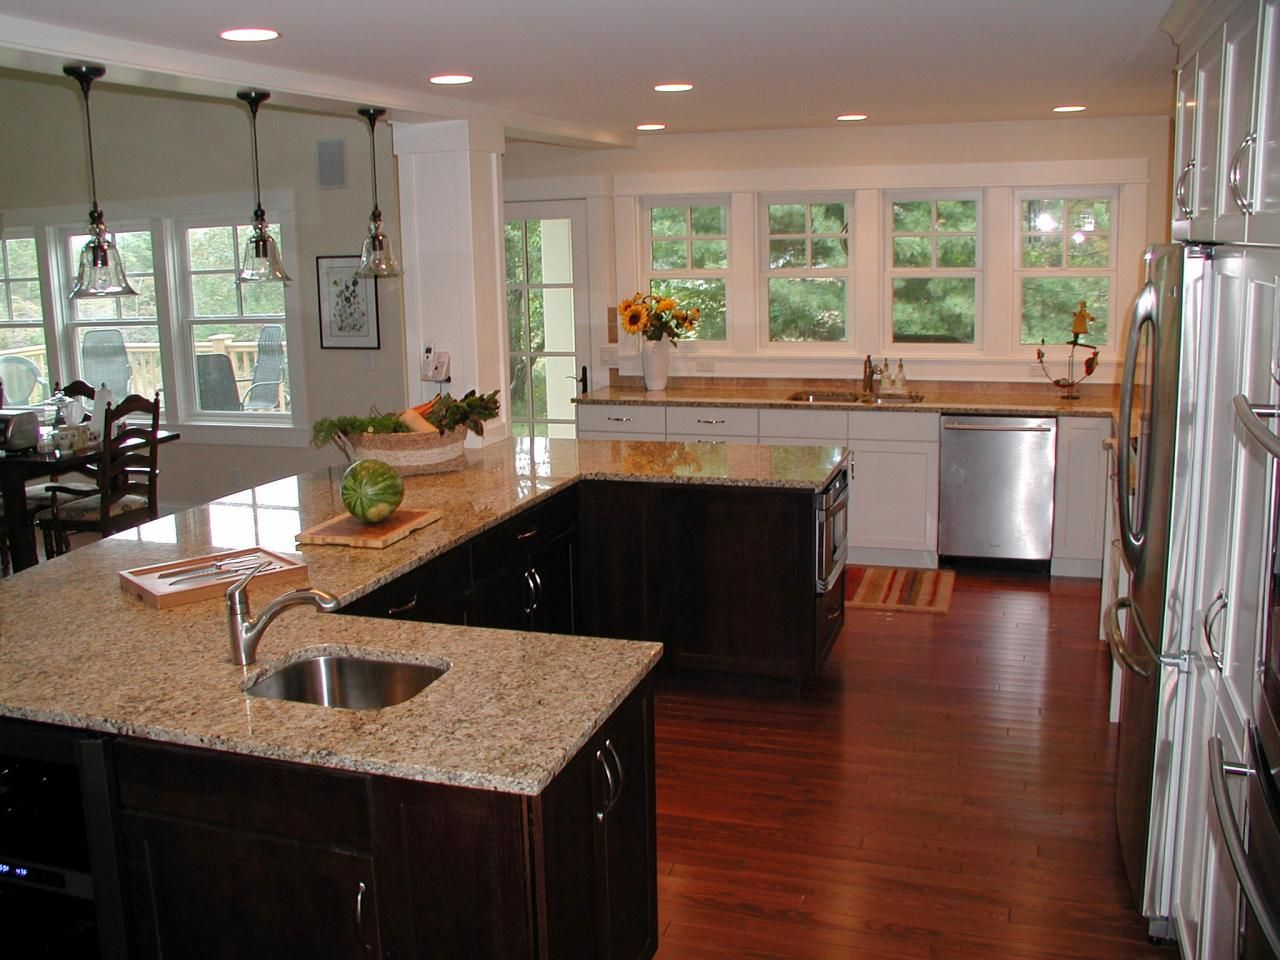 Freestanding Kitchen Islands Pictures Ideas From Hgtv: 20+ Party-Ready Kitchens